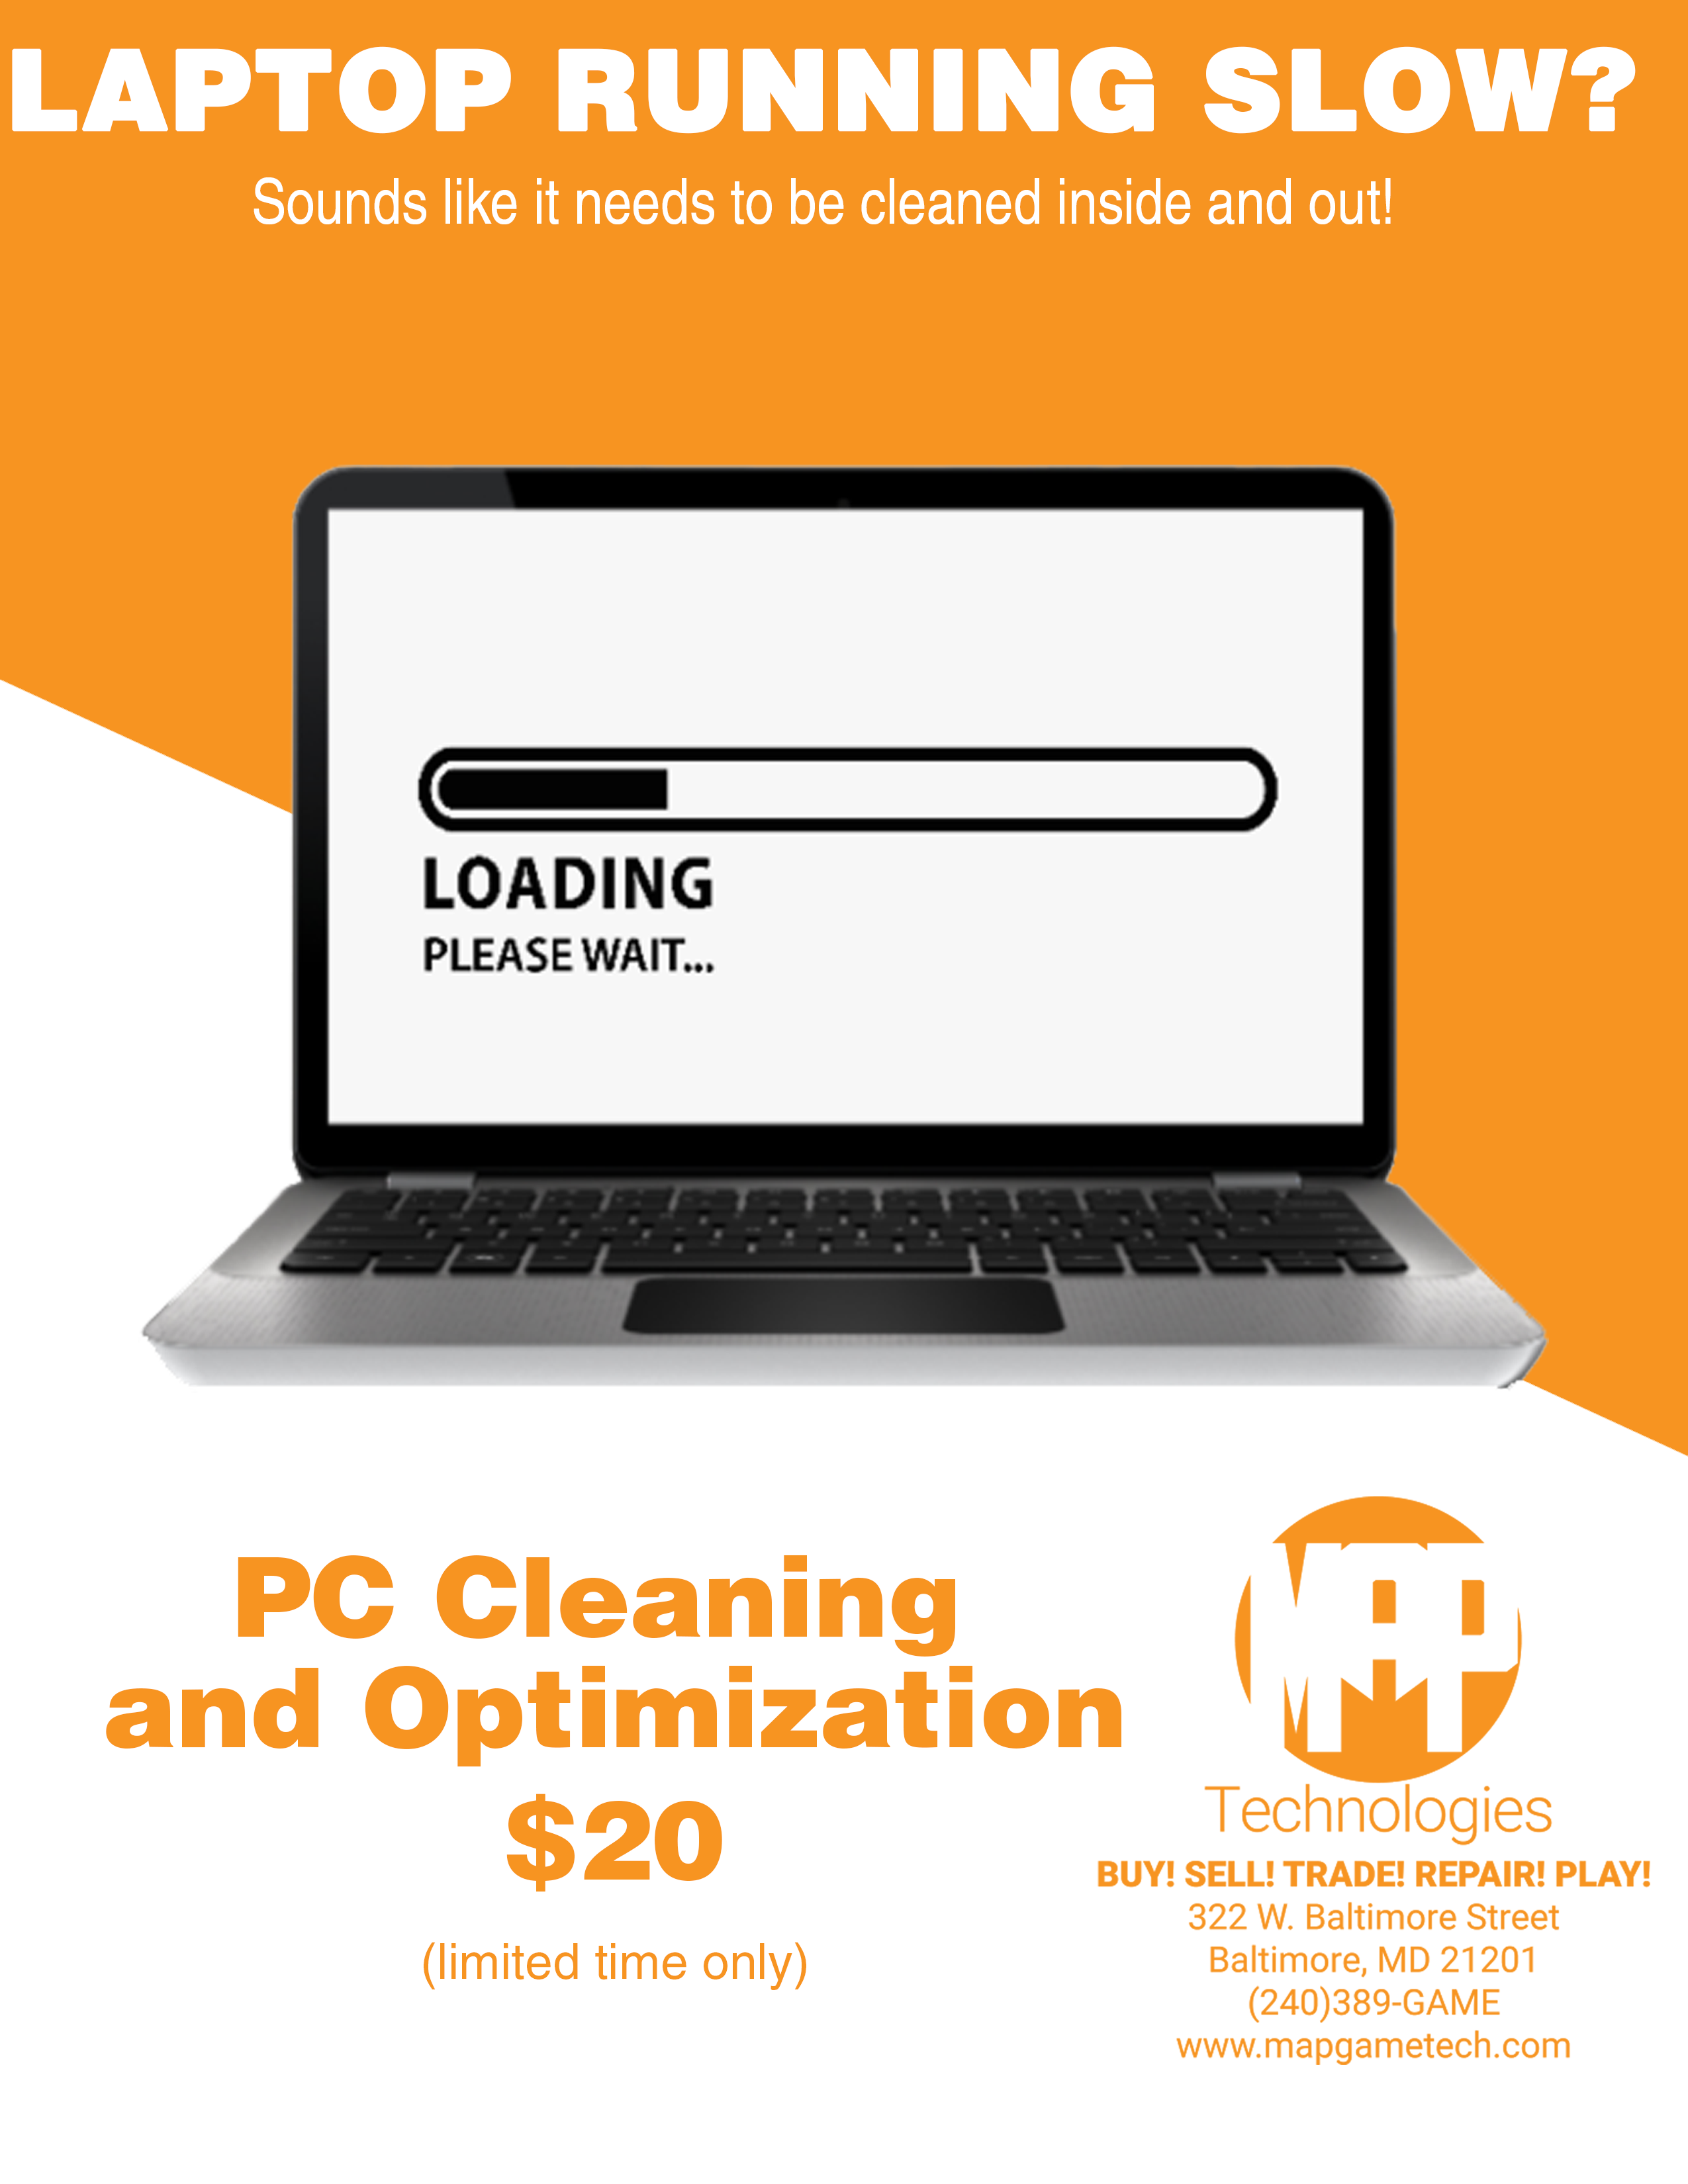 PC Cleaning and Optimization – $20